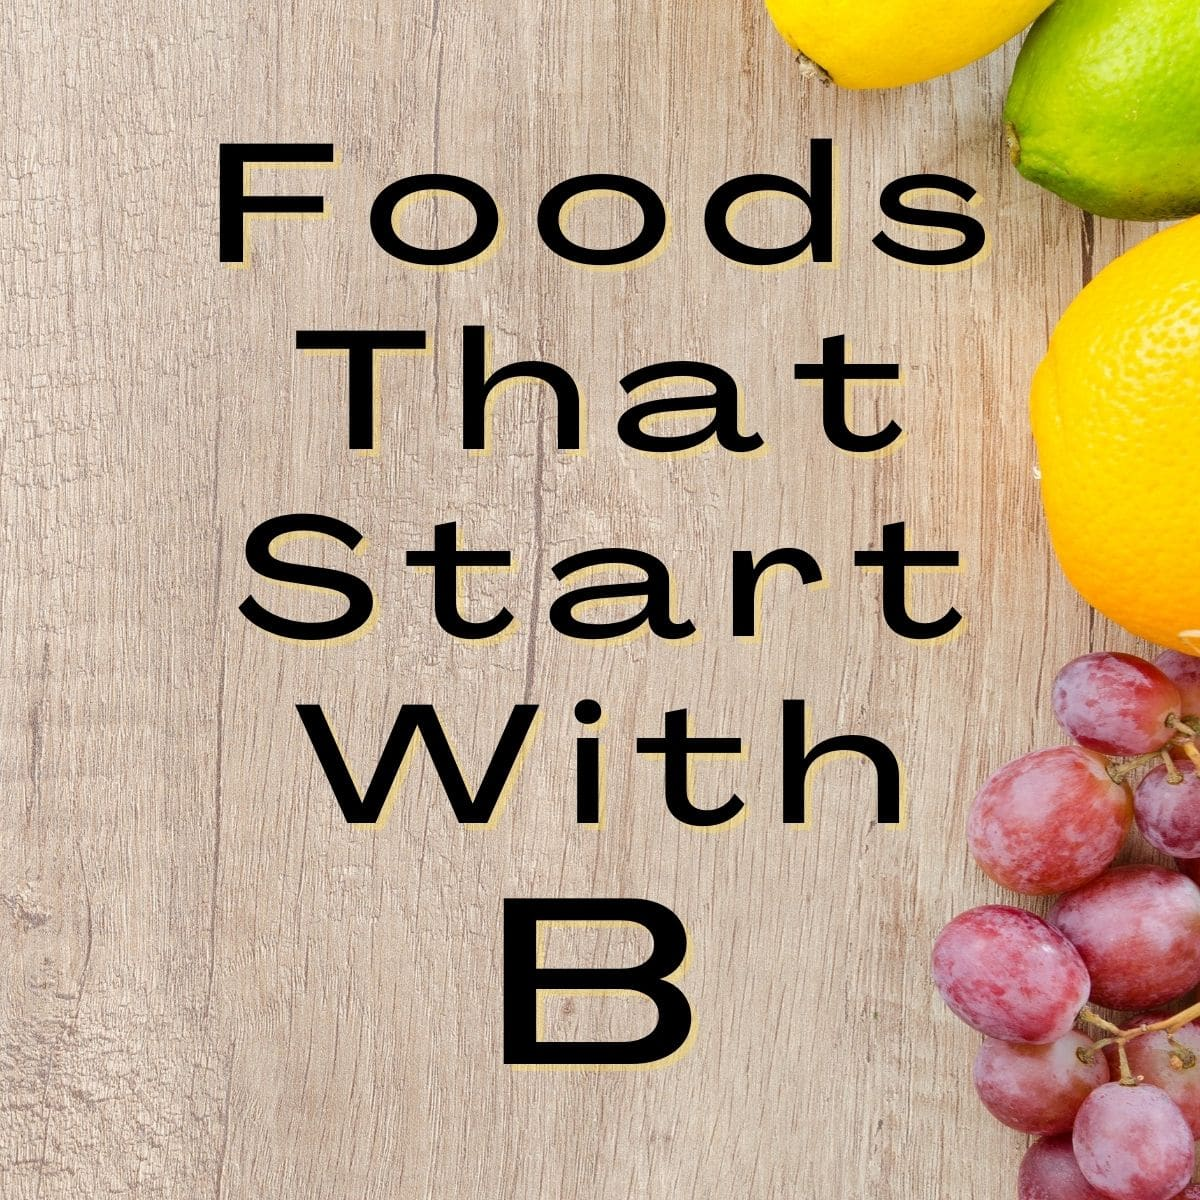 Foods that start with b text on a wood grain background.